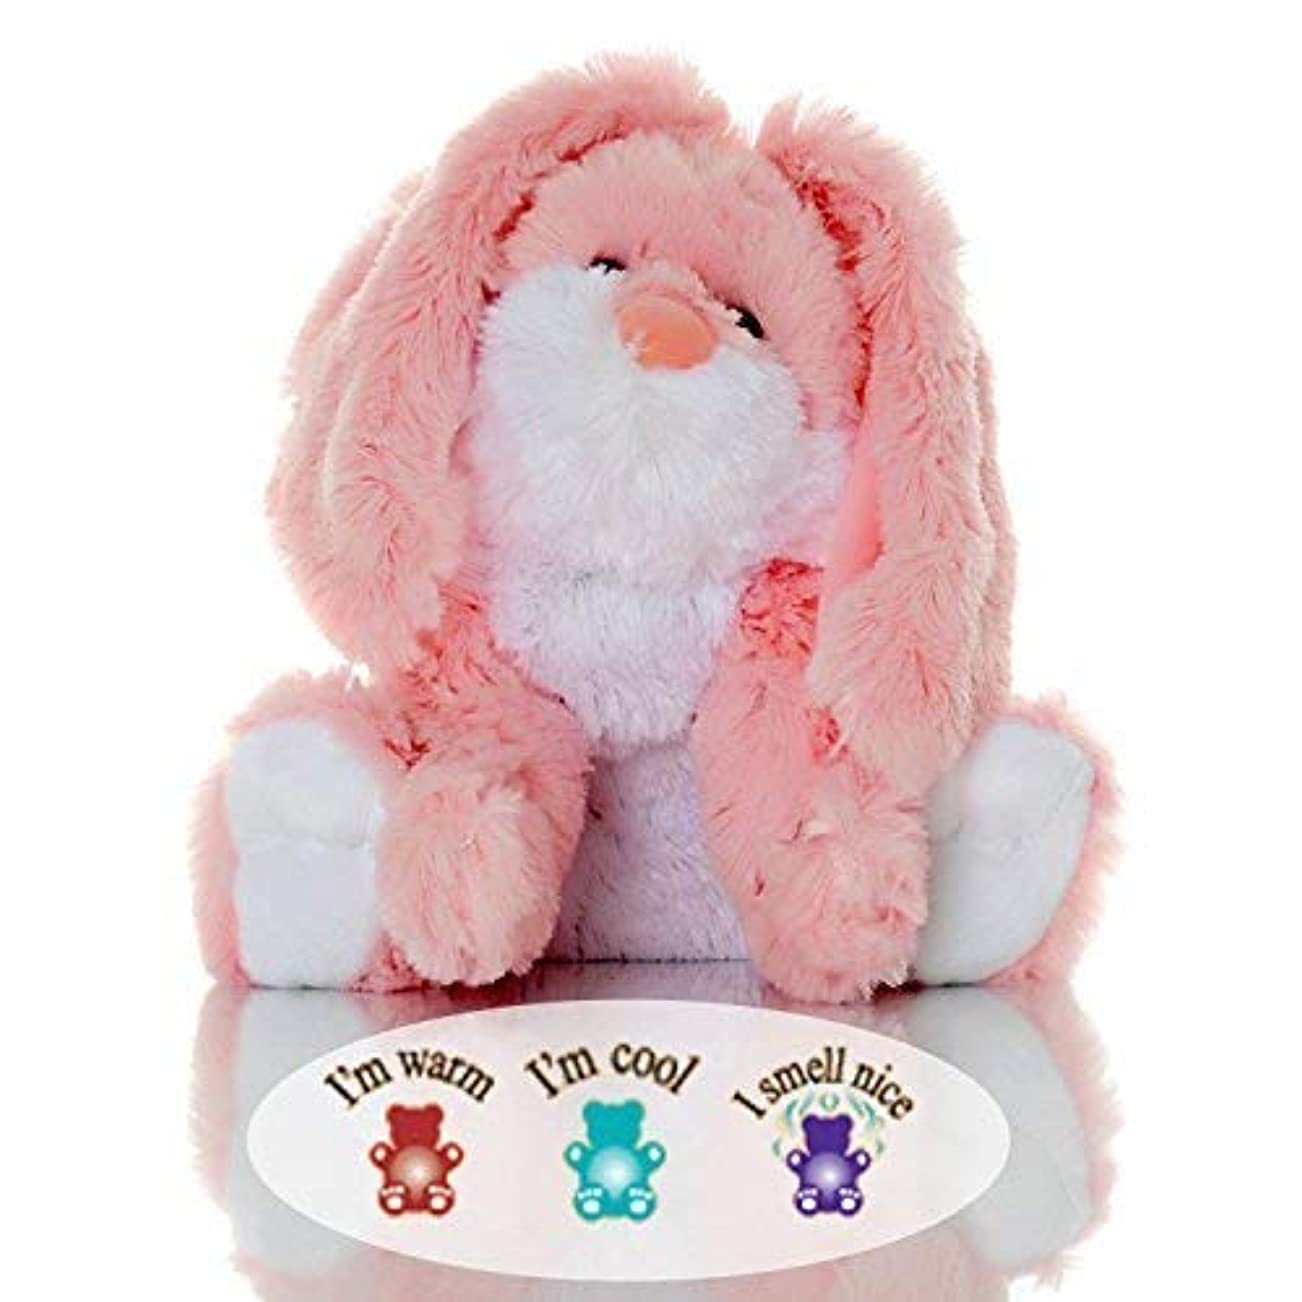 密受益者欠陥Sootheze Rosey Bunny Rabbit - Microwavable Stuffed Animal - Weighted Lavender Scented Aromatherapy - Hot and Cold Therapy - 10.5%?????????% Tall & 2 LBS. [並行輸入品]